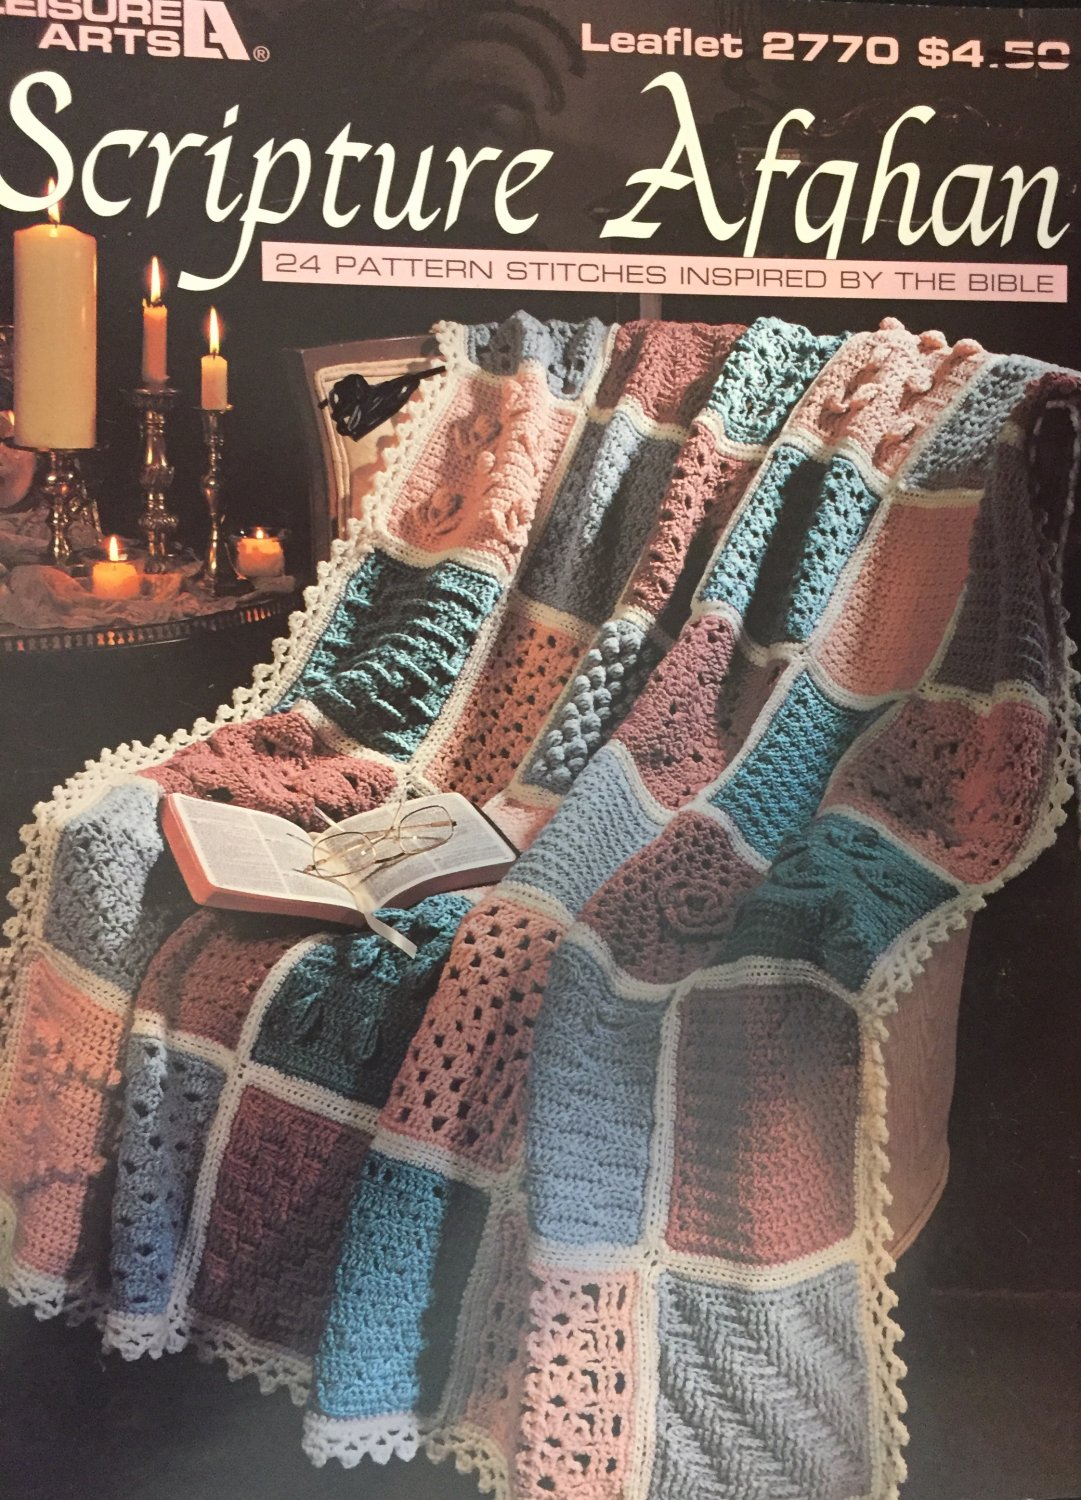 Scripture Afghan 24 Pattern Stitches Inspired by the Bible Leisure Arts Leaflet 2770